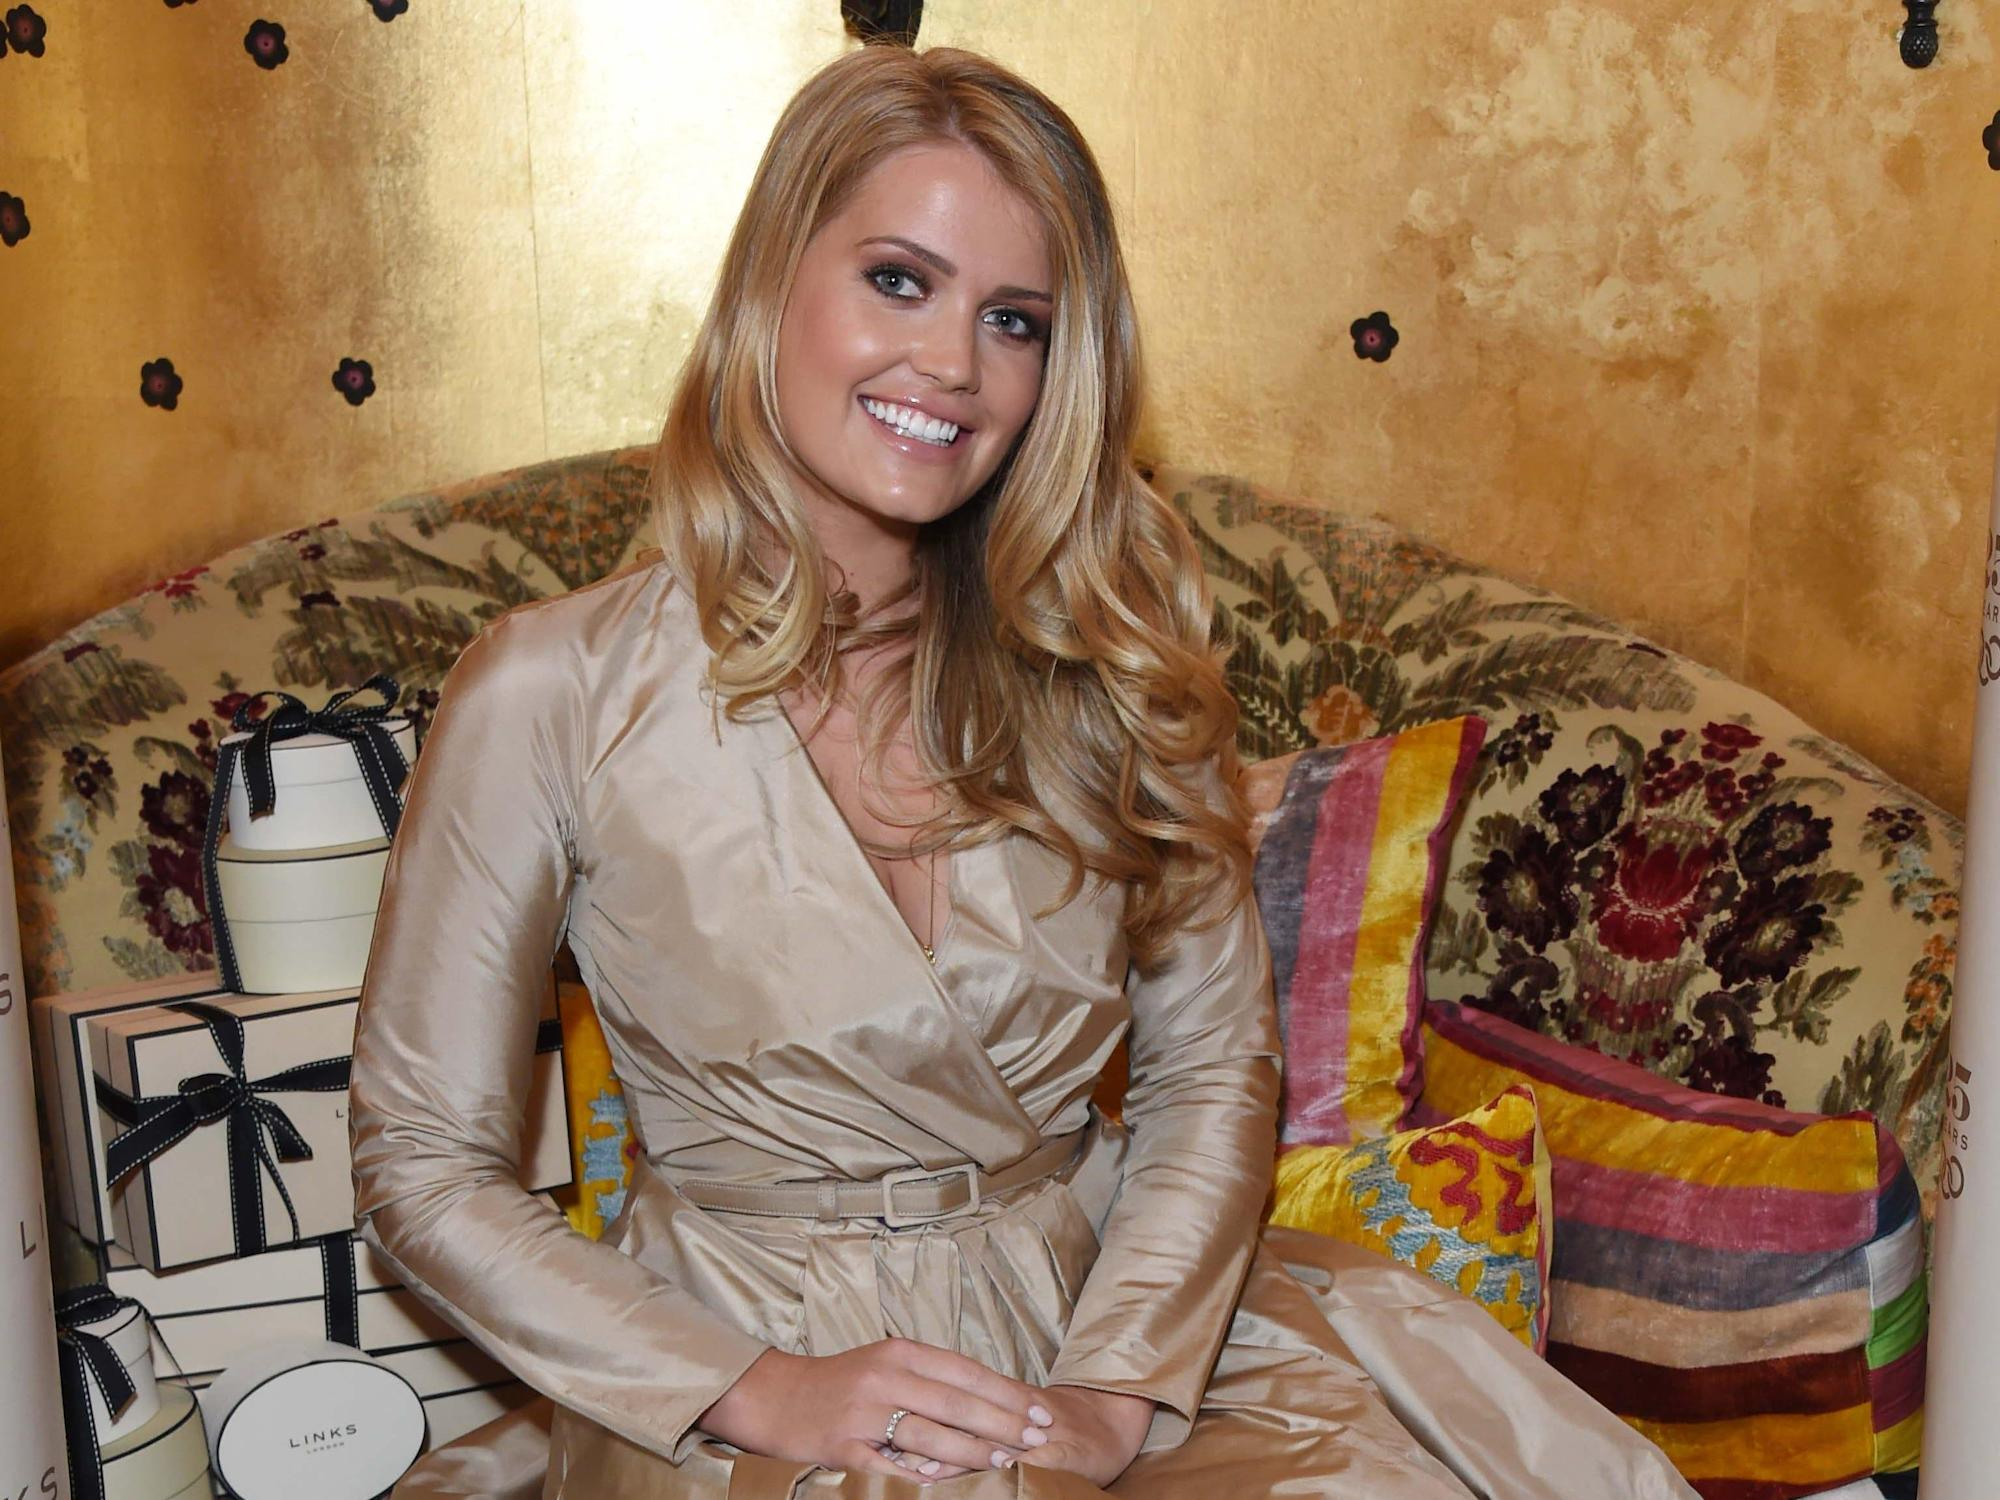 Princess Diana's niece Lady Kitty Spencer got married in a custom Victorian-inspired Dolce & Gabbana gown